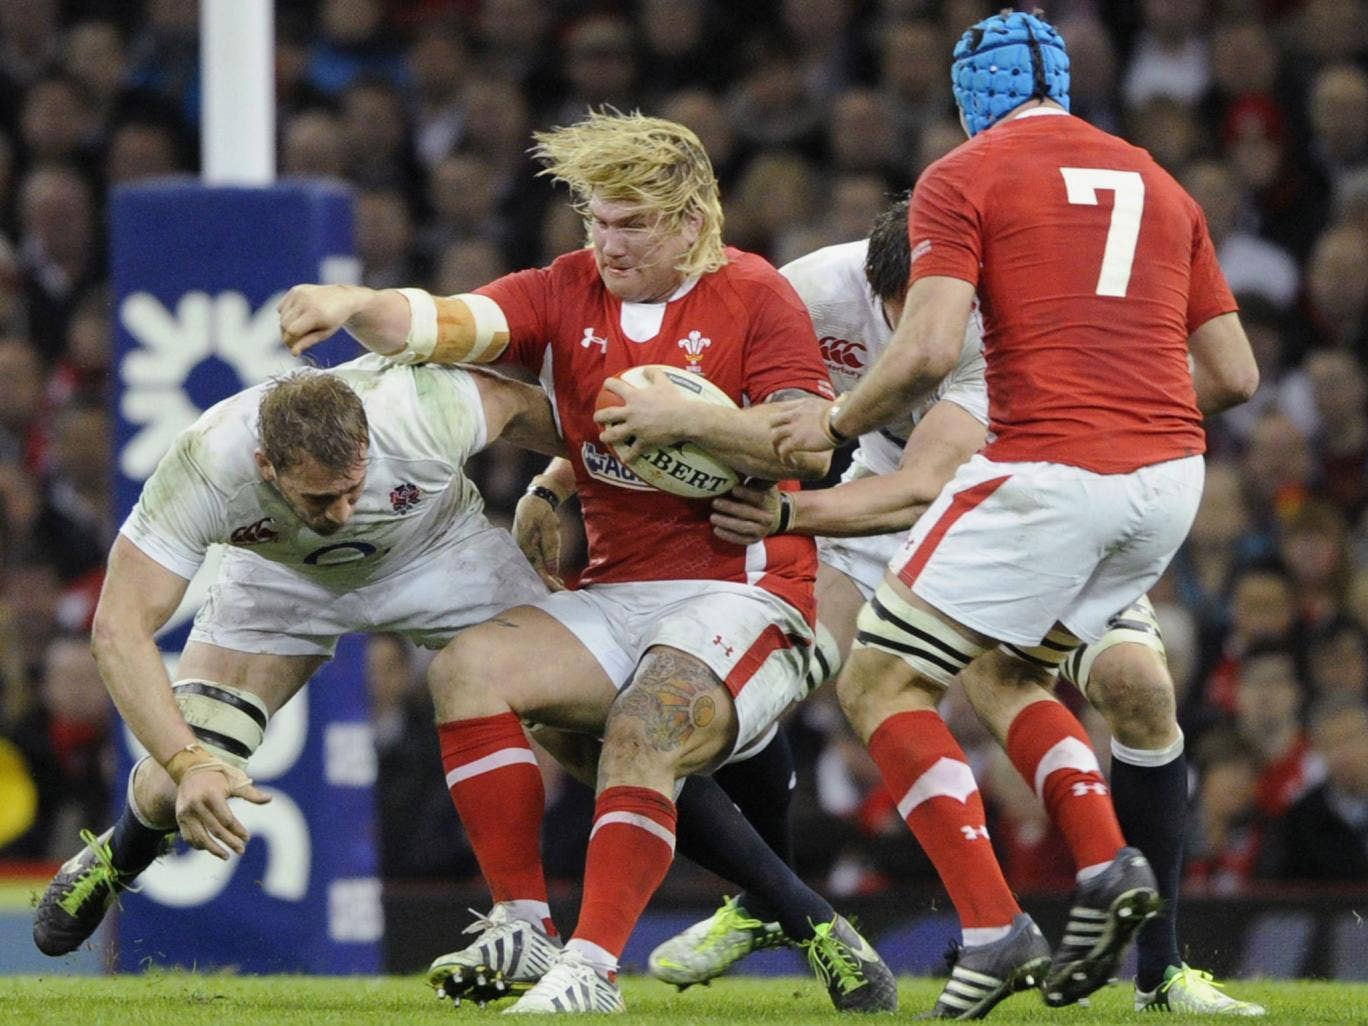 Captain crunch: Chris Robshaw (left) leads by example with a tackle on the Wales hooker Richard Hibbard